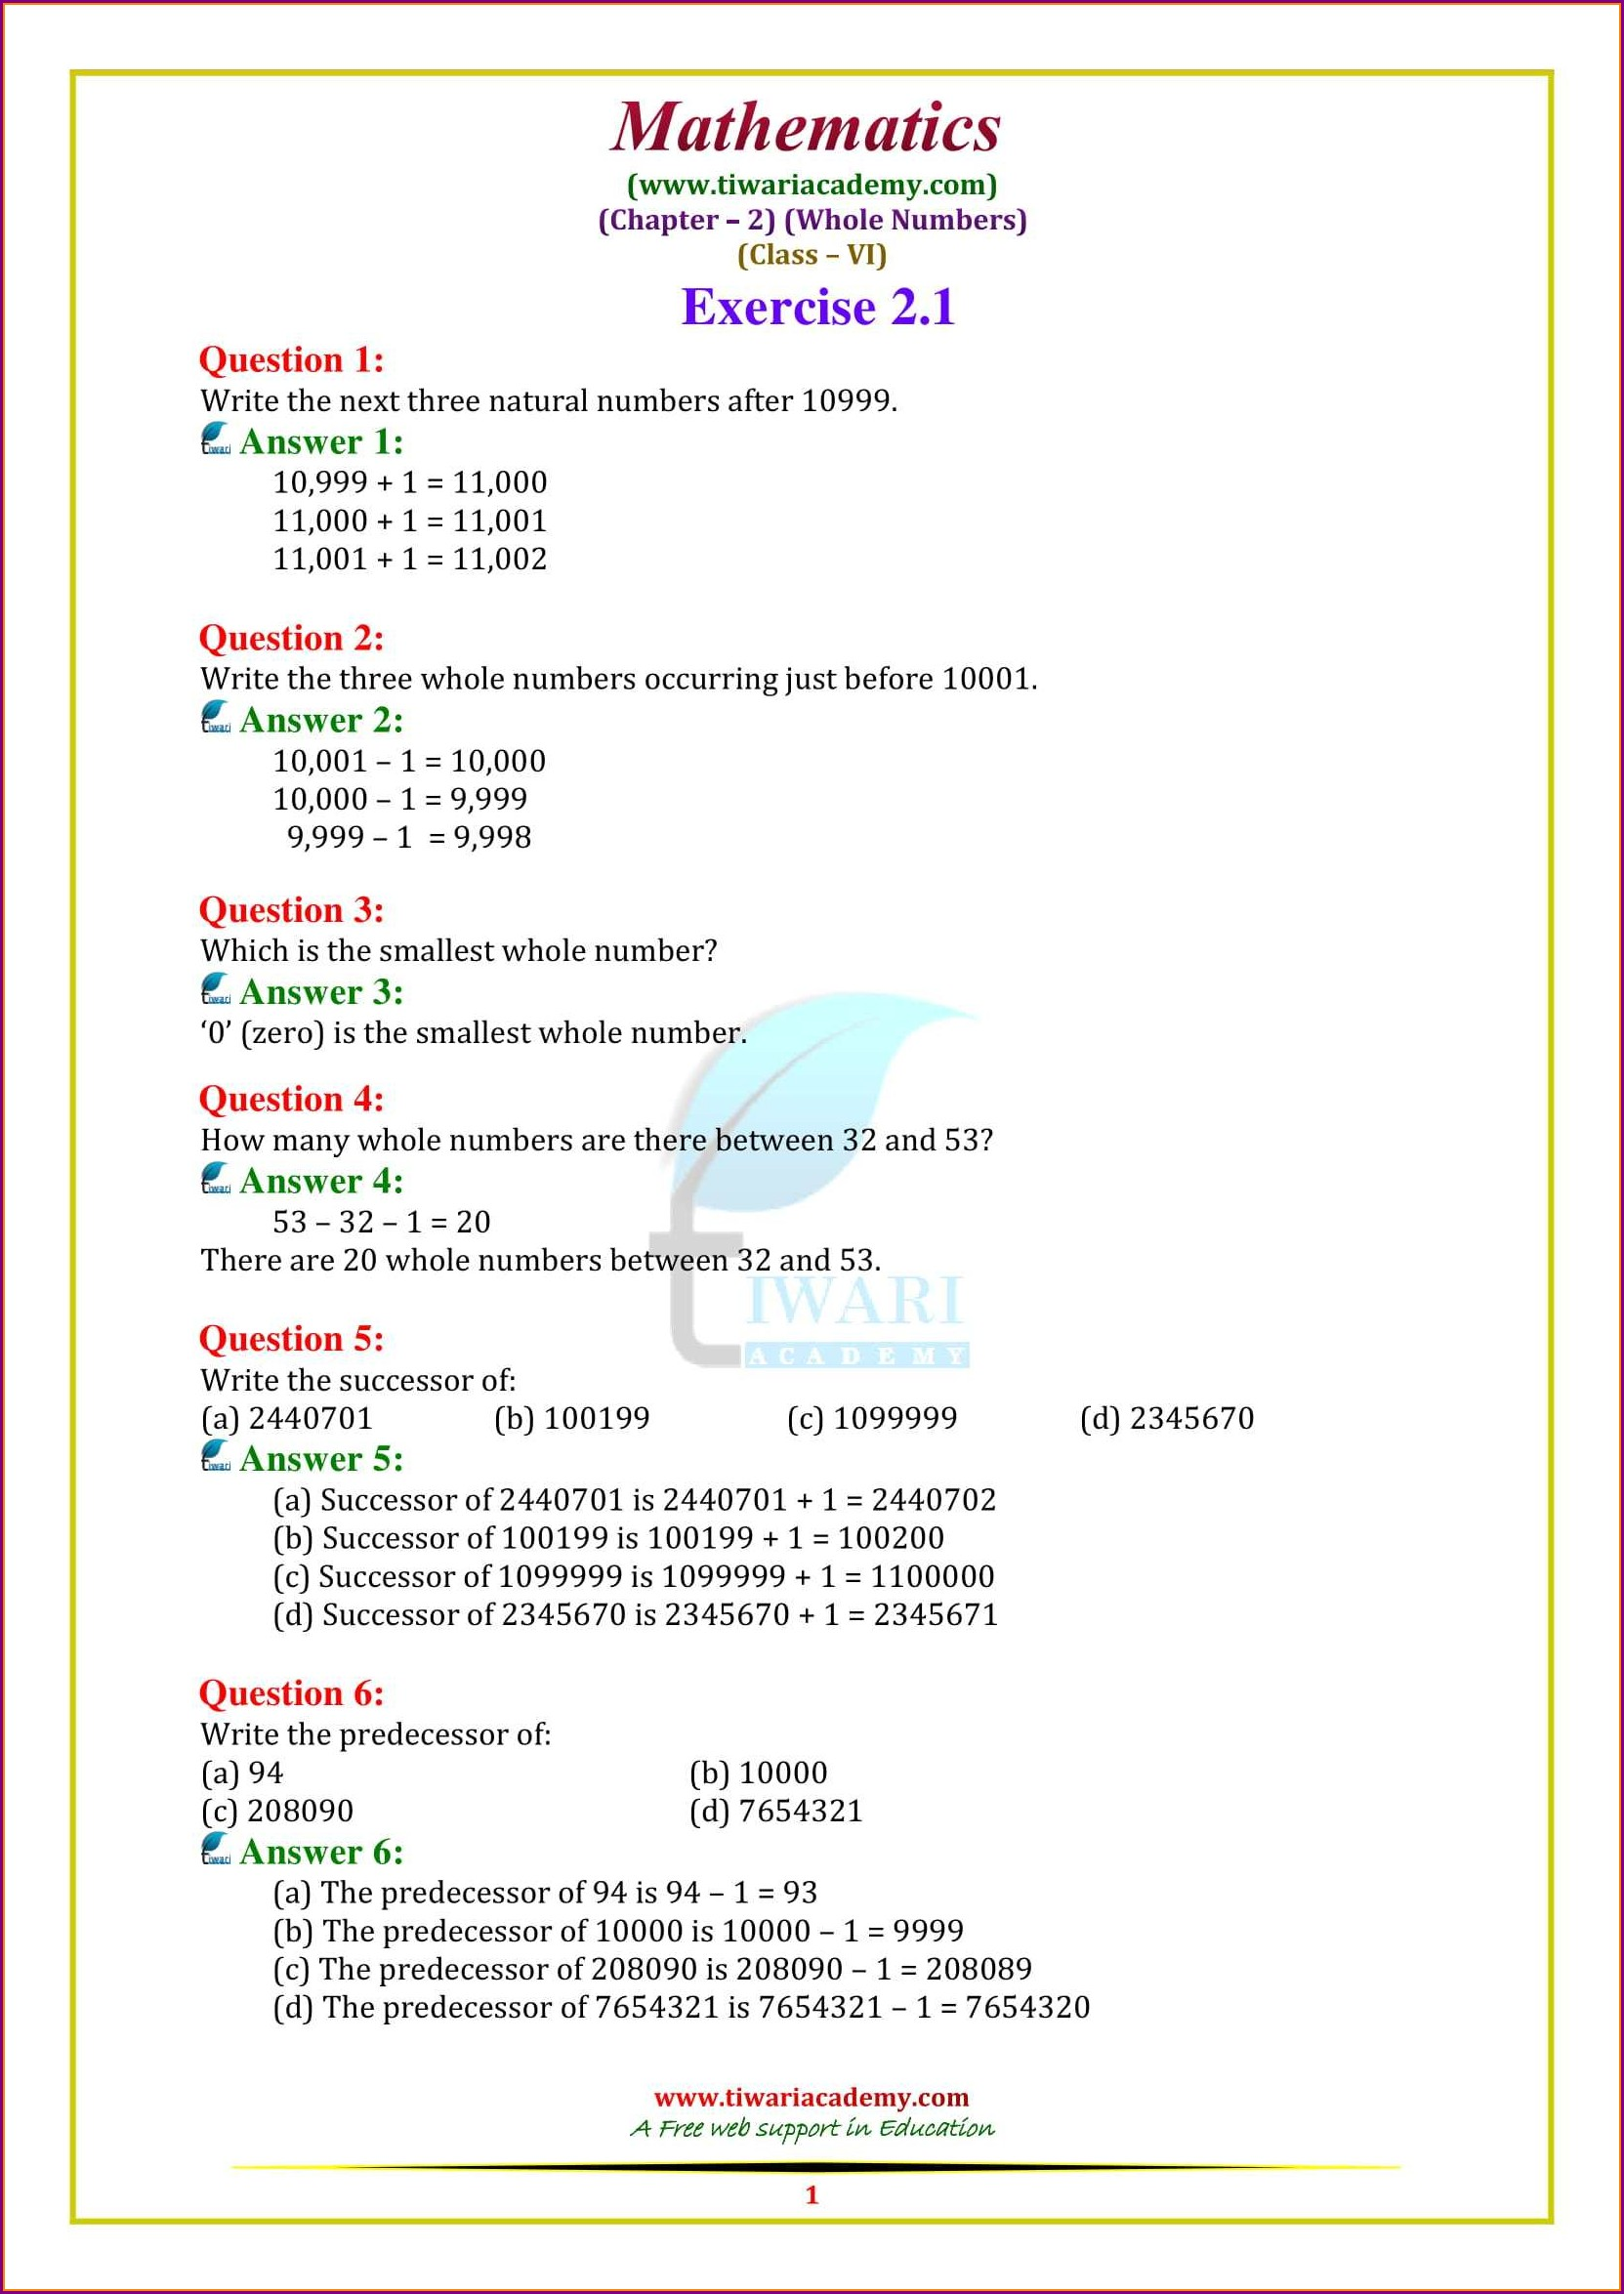 Whole Numbers Worksheets For Class 6